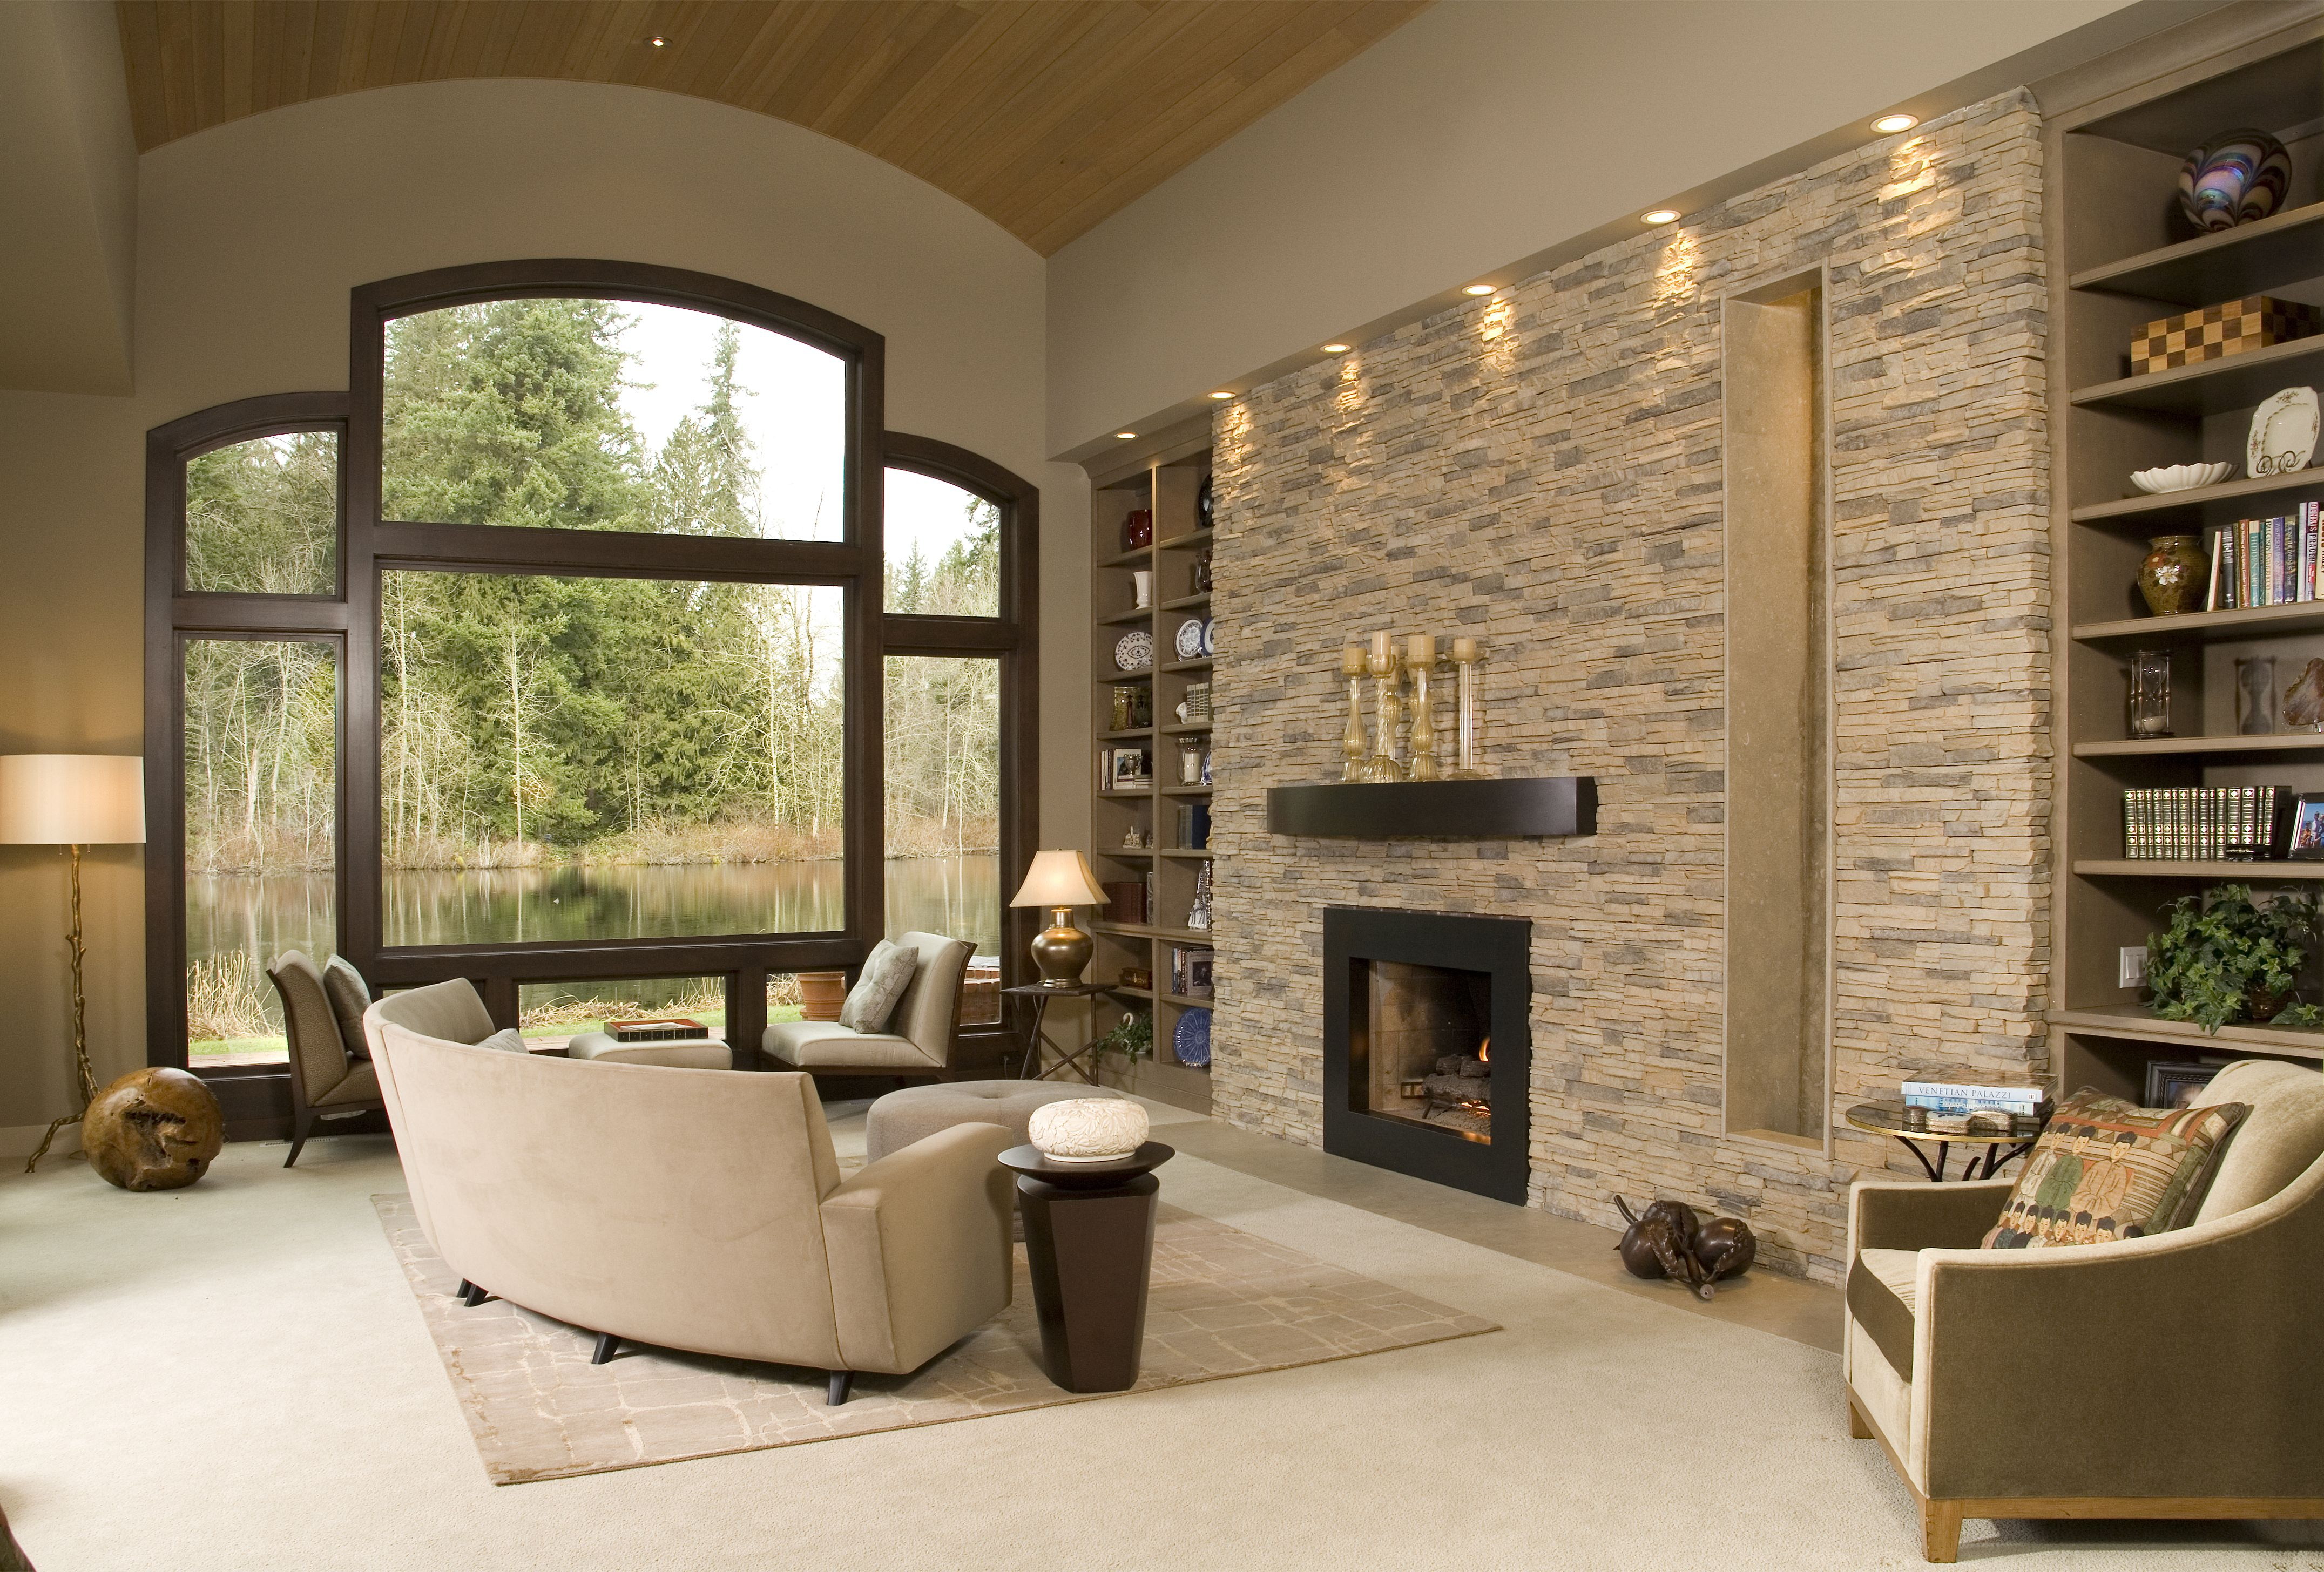 Accent Stone Wall Eldorado Stone Accent Wall Alderwood Stacked Stone